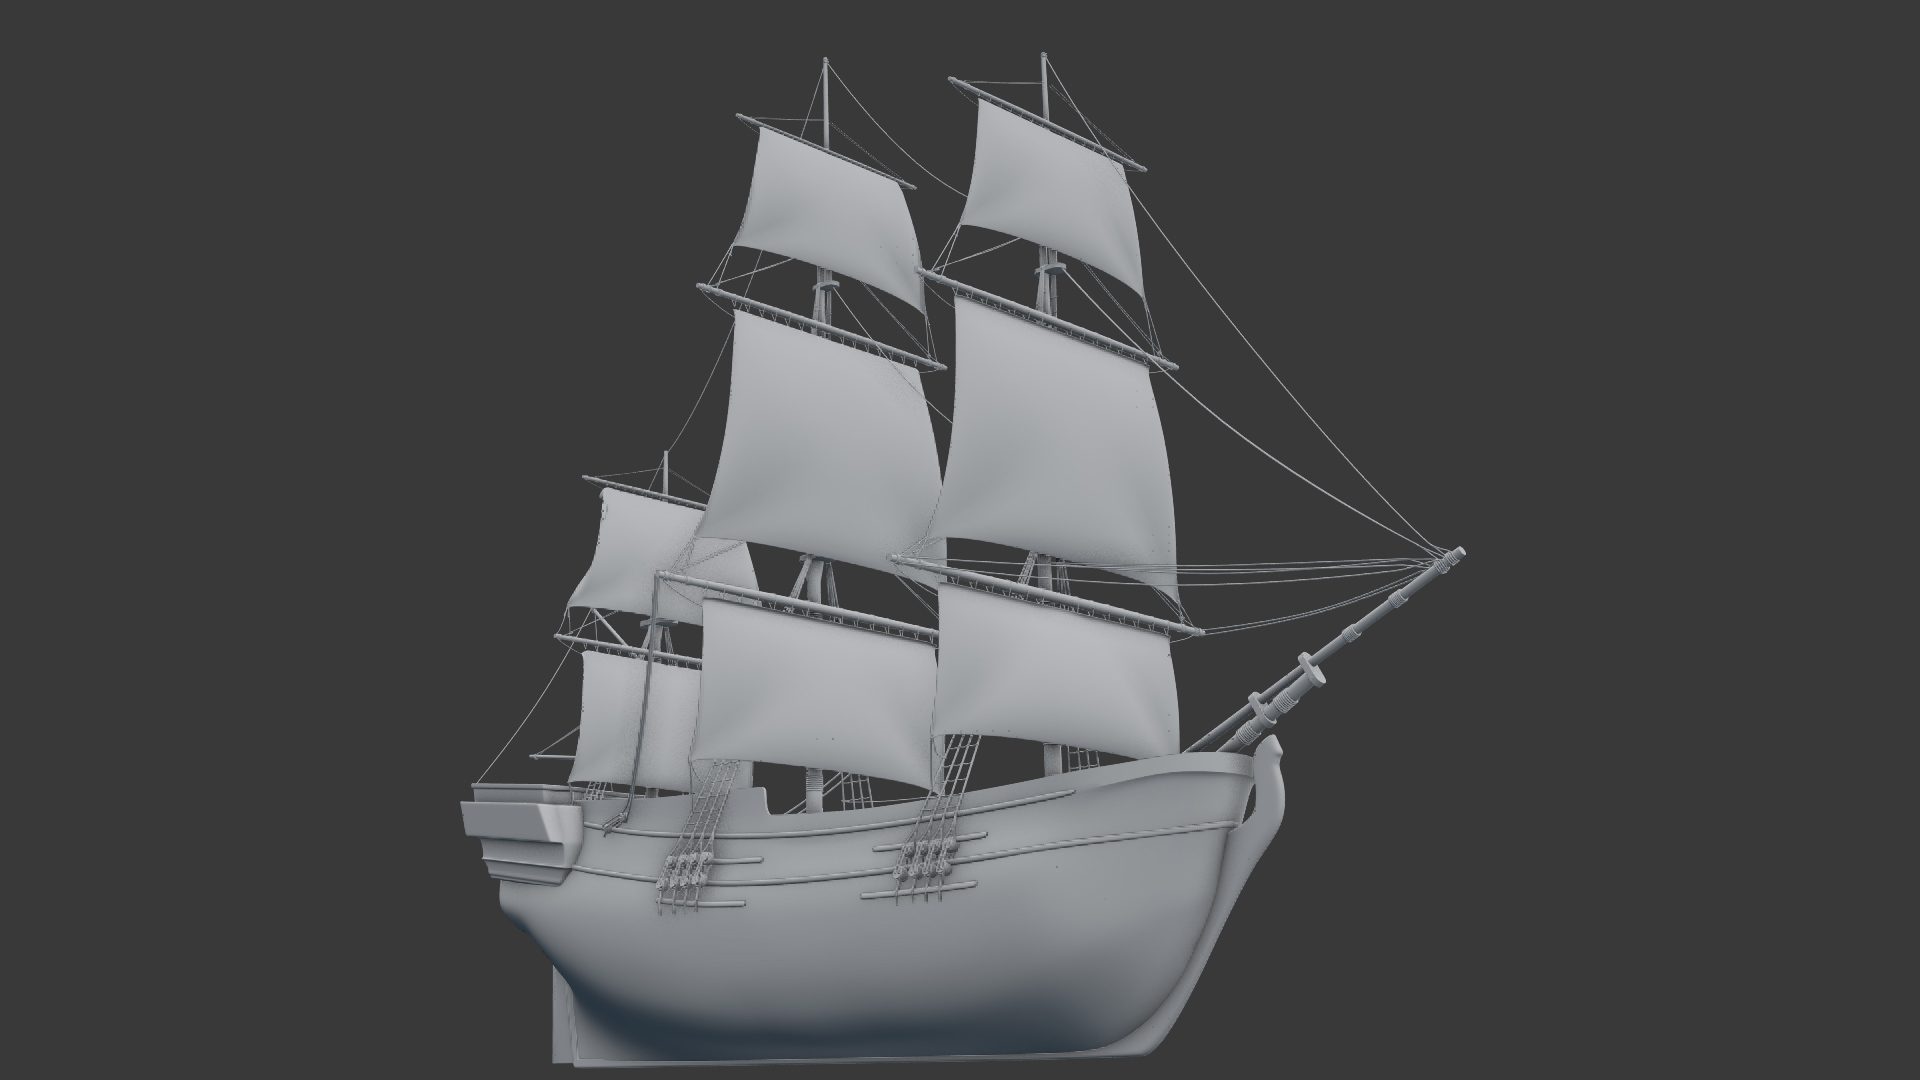 opengl render of the sail ship